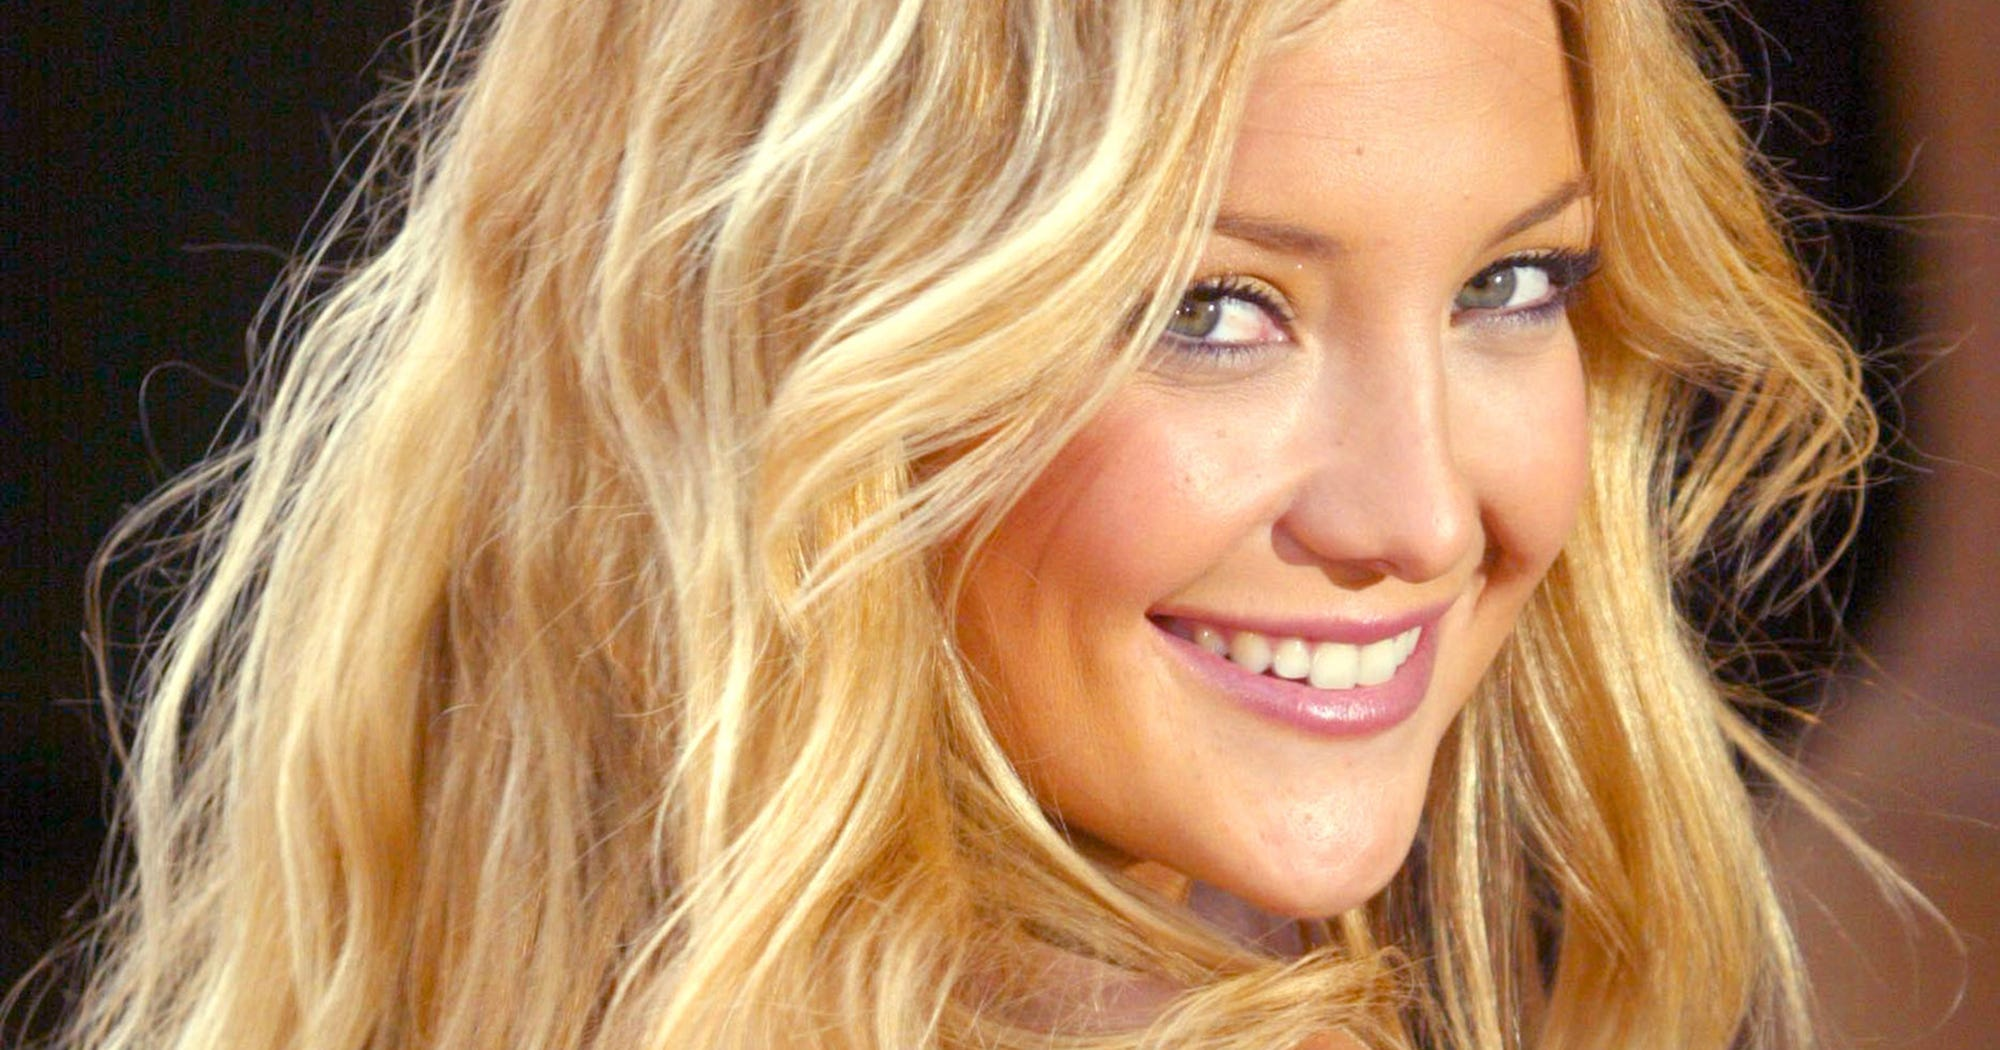 Kate Hudson Hair Stylist On Cut & Color Over The Years